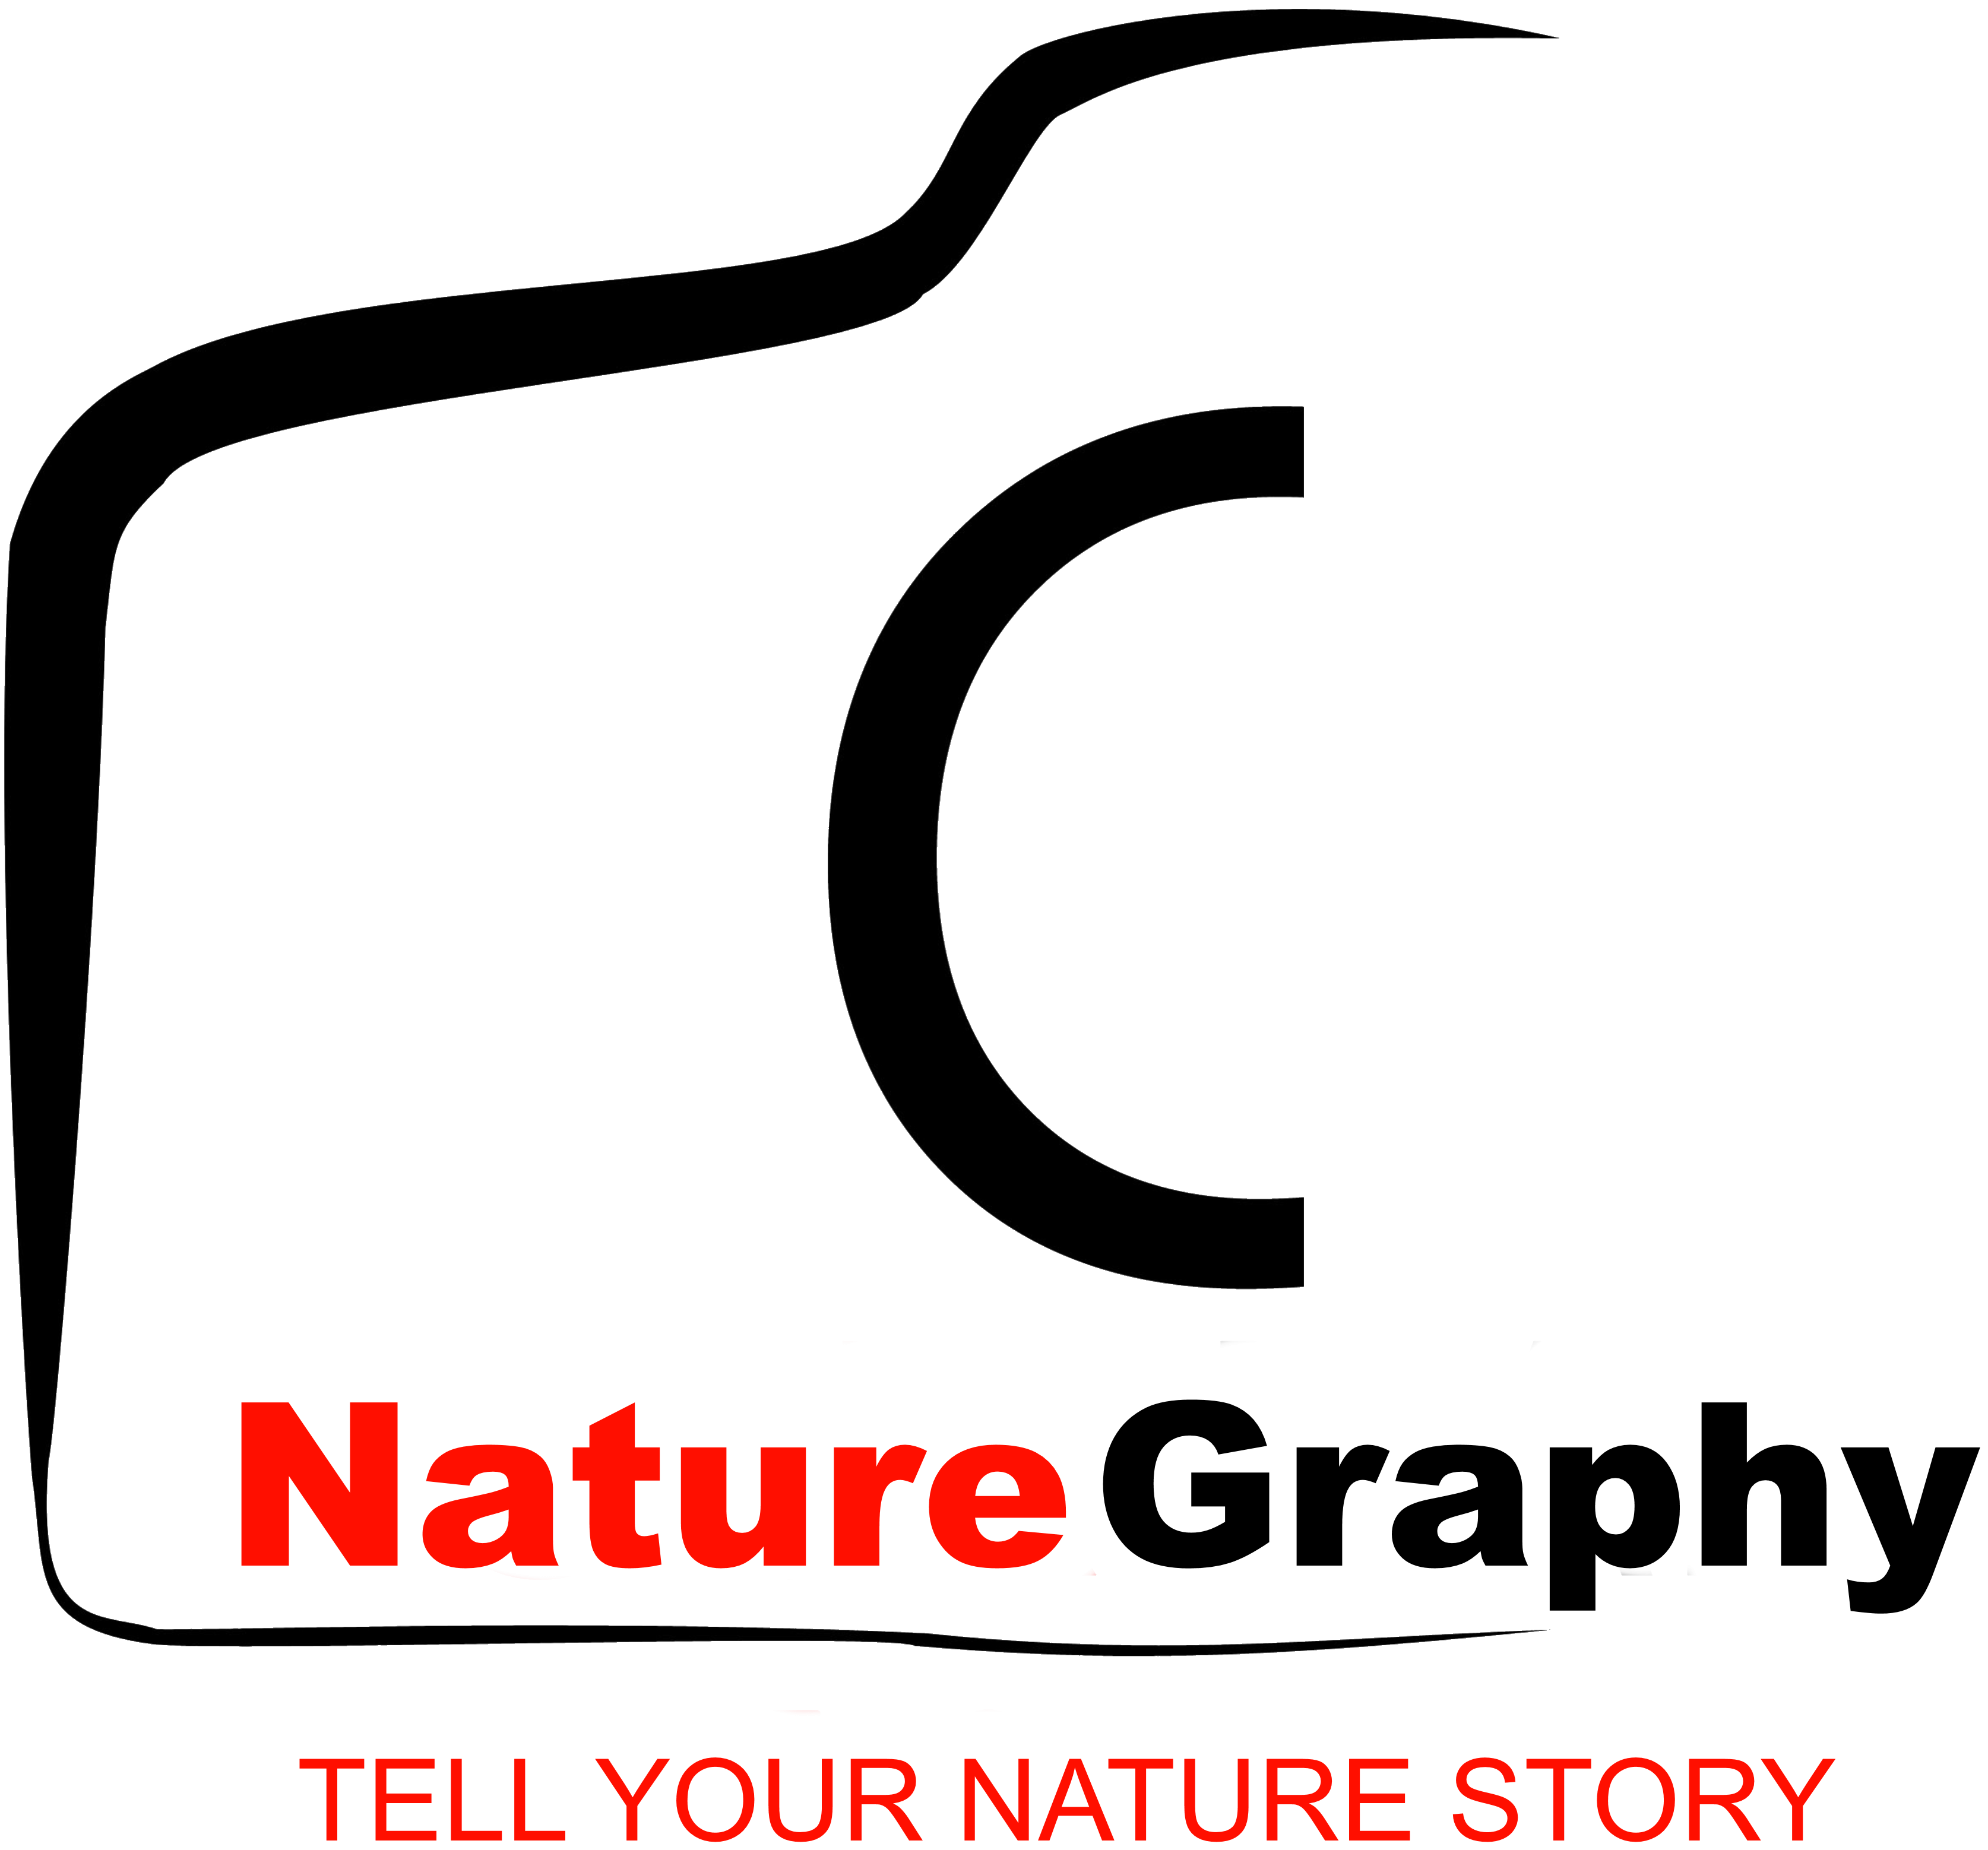 NatureGraphy (Tell your nature story)